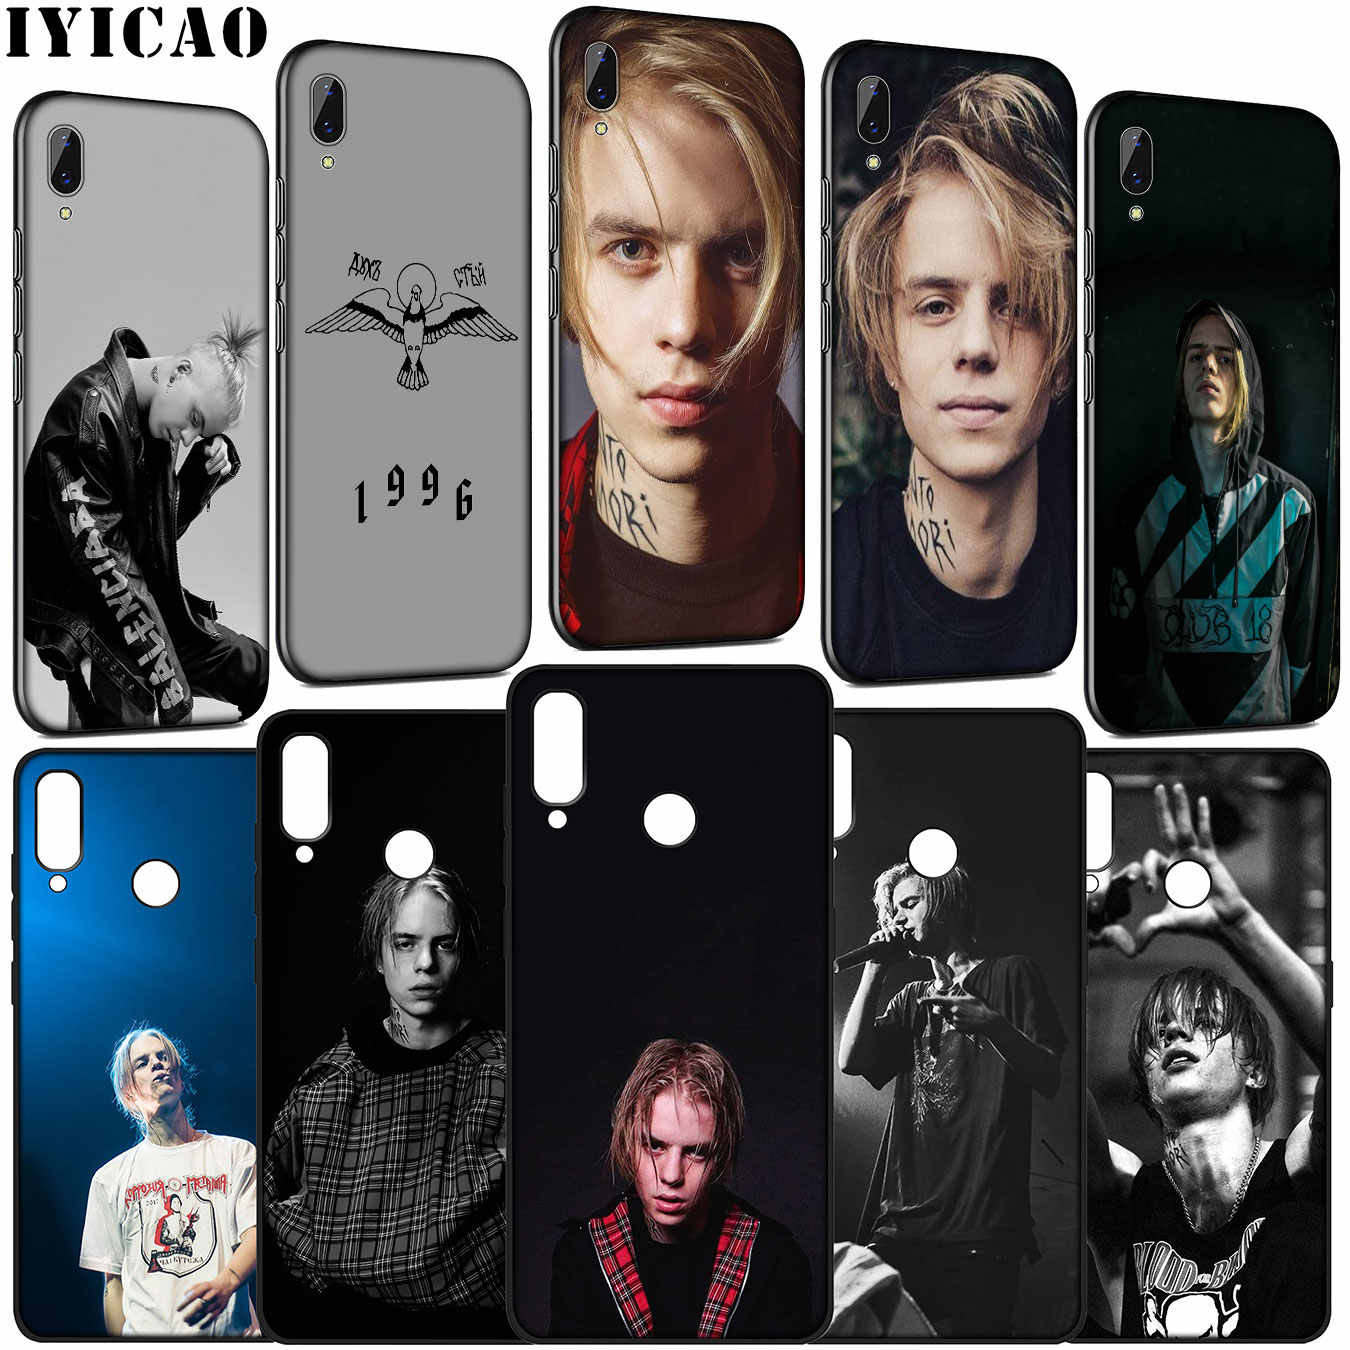 IYICAO Russia rapper Pharaoh Hot singer Soft Case for Huawei Y9 Y7 Y6 Prime 2019 Honor 20 10 9 9X 8C 8X 8 Lite 7C 7X 7A Pro